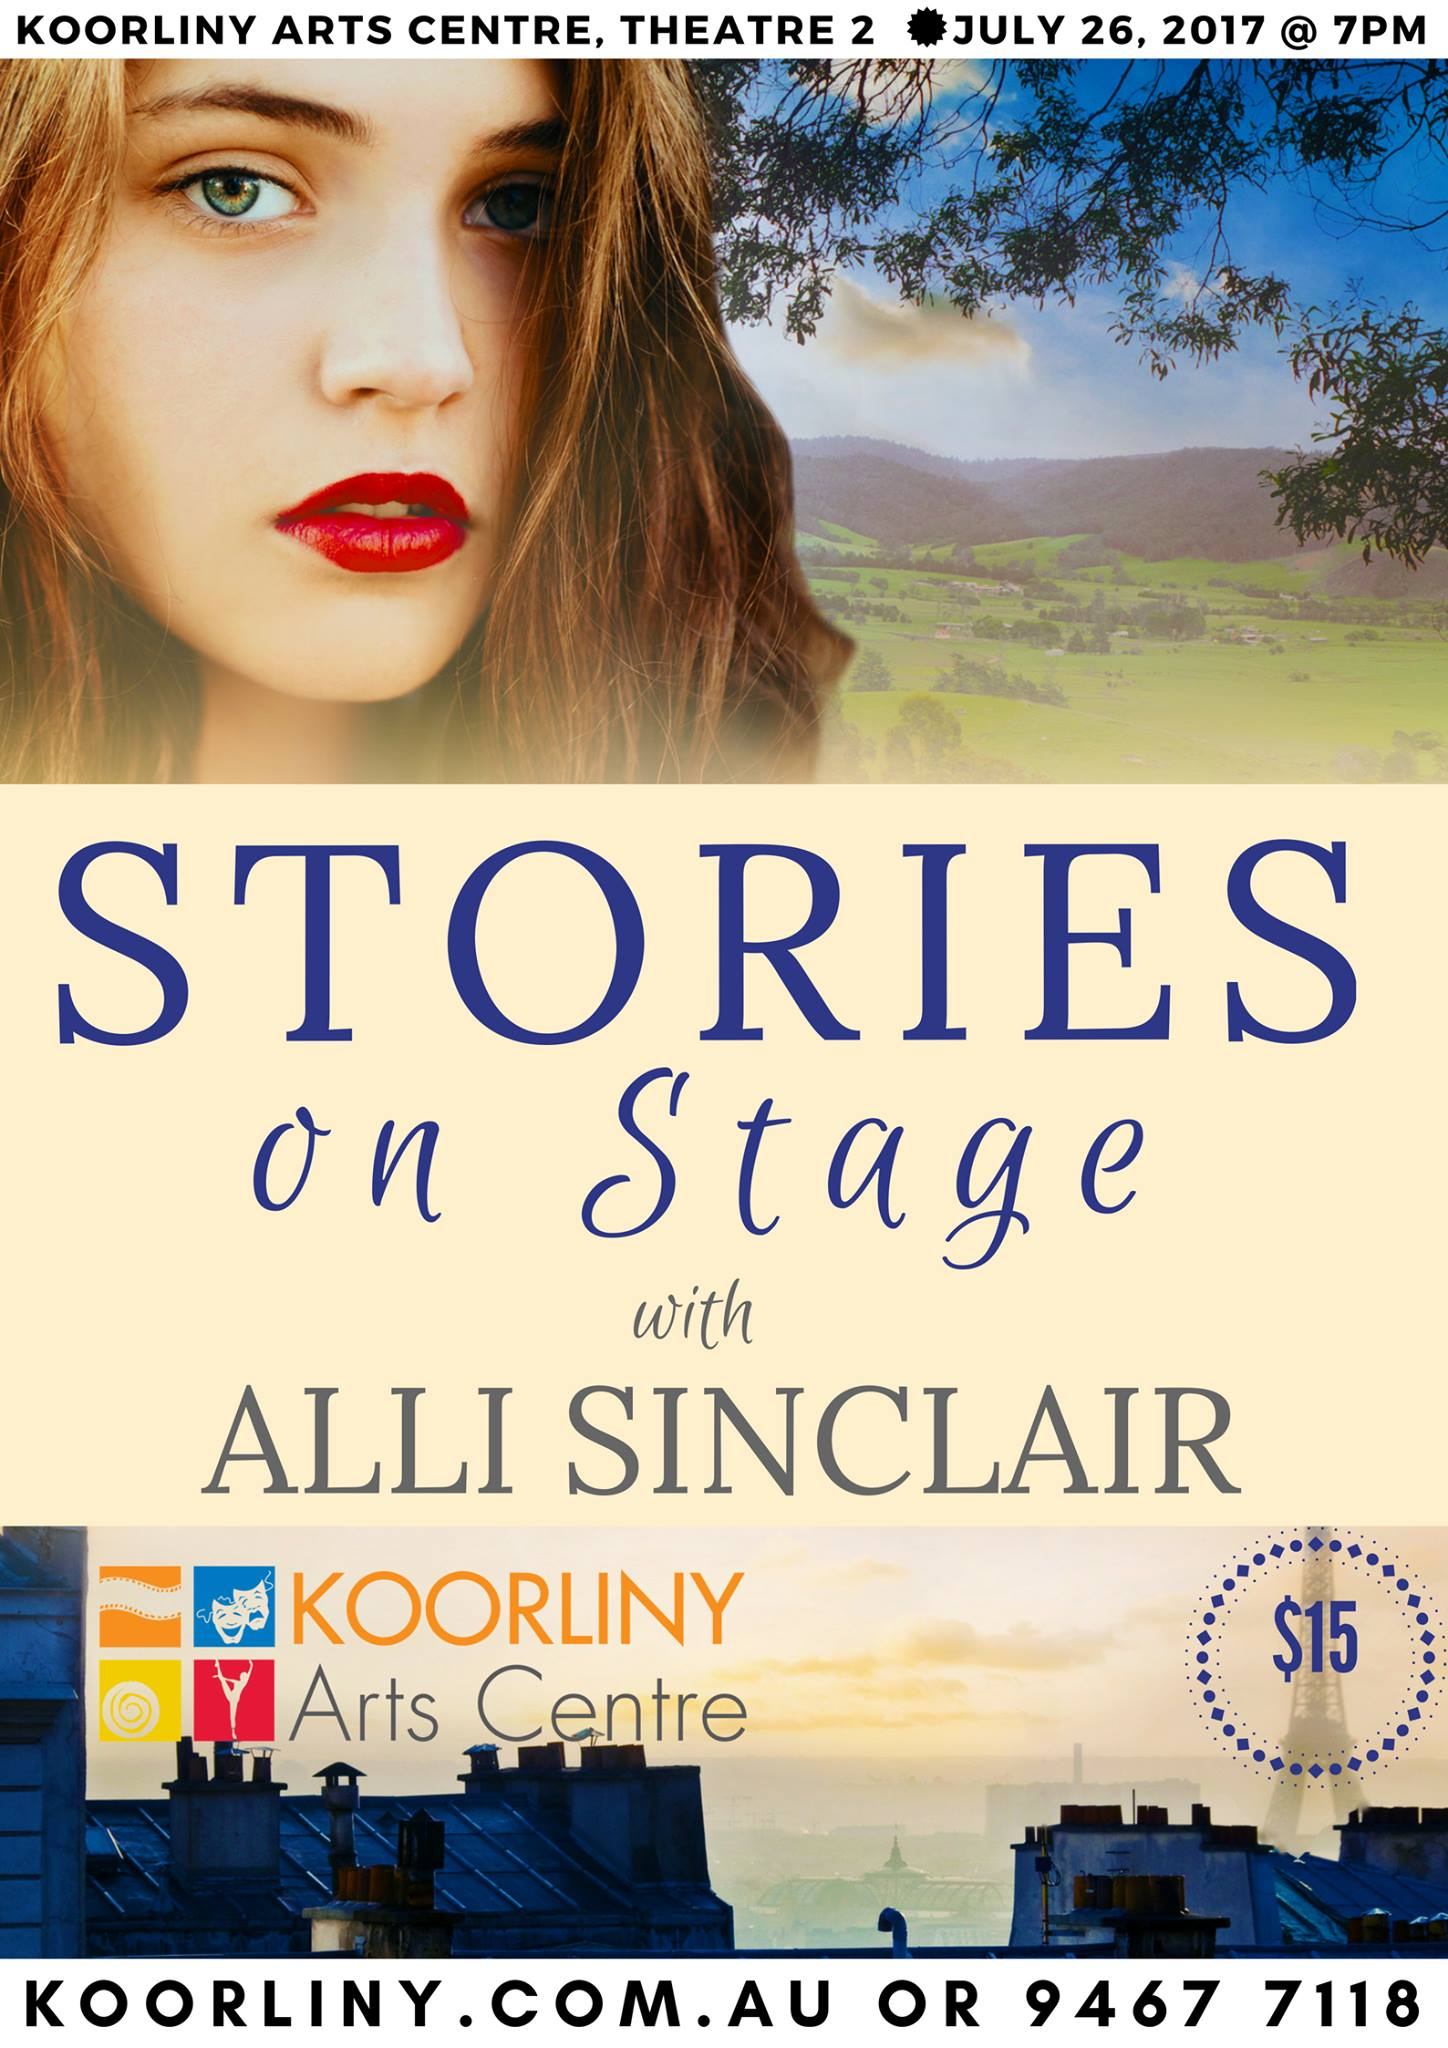 Stories on Stage: Alli Sinclair